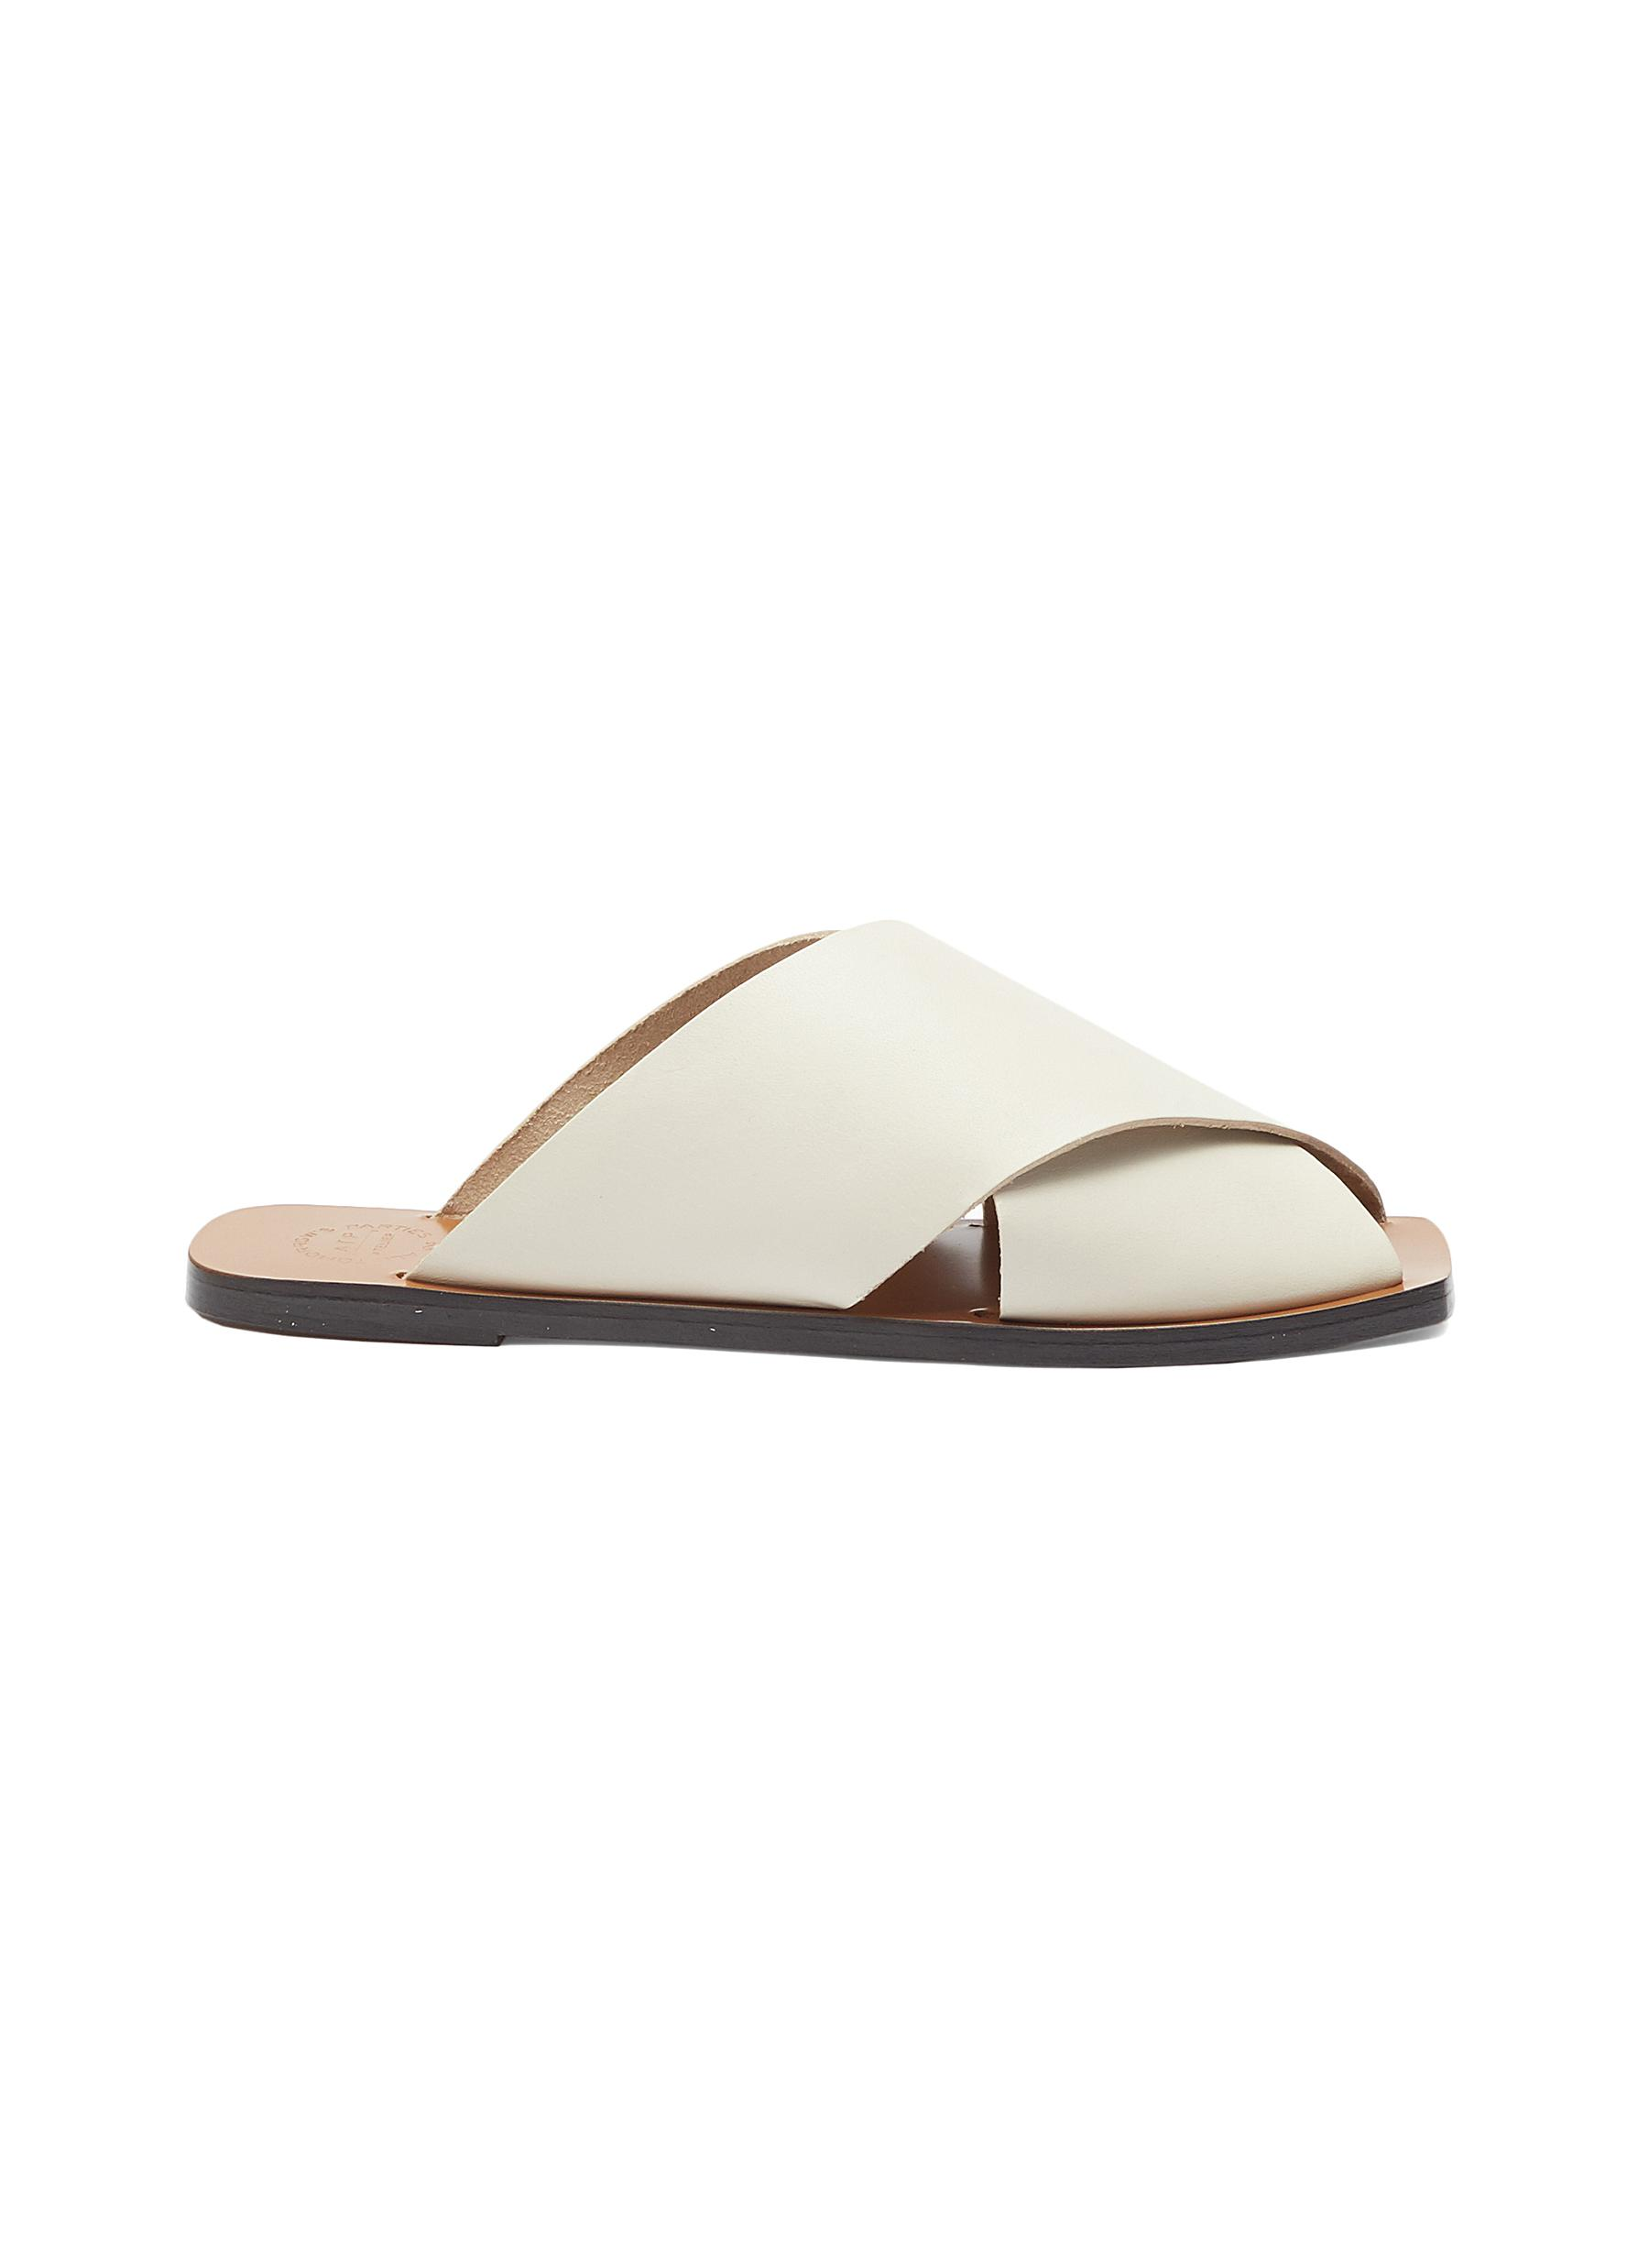 Atp Atelier 'Alicia' Cross Band Leather Slide Sandals